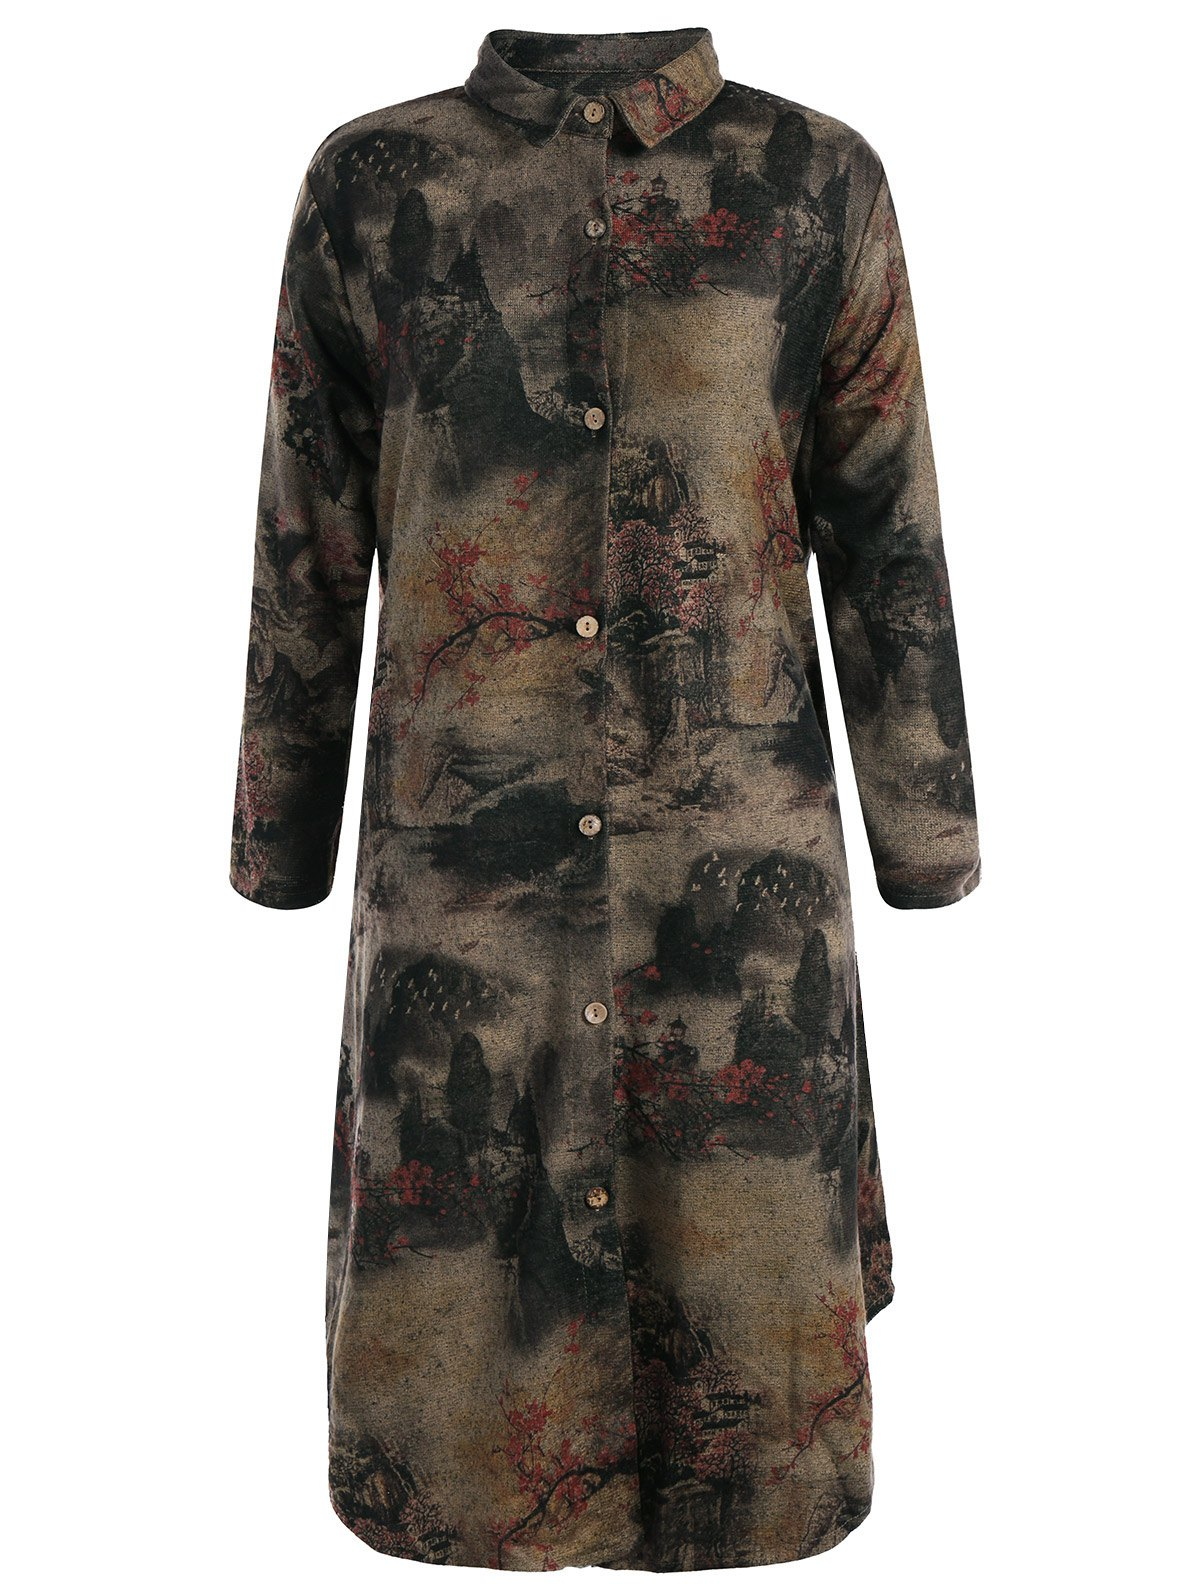 Store Landscape Ink Painting Long Button Up Coat